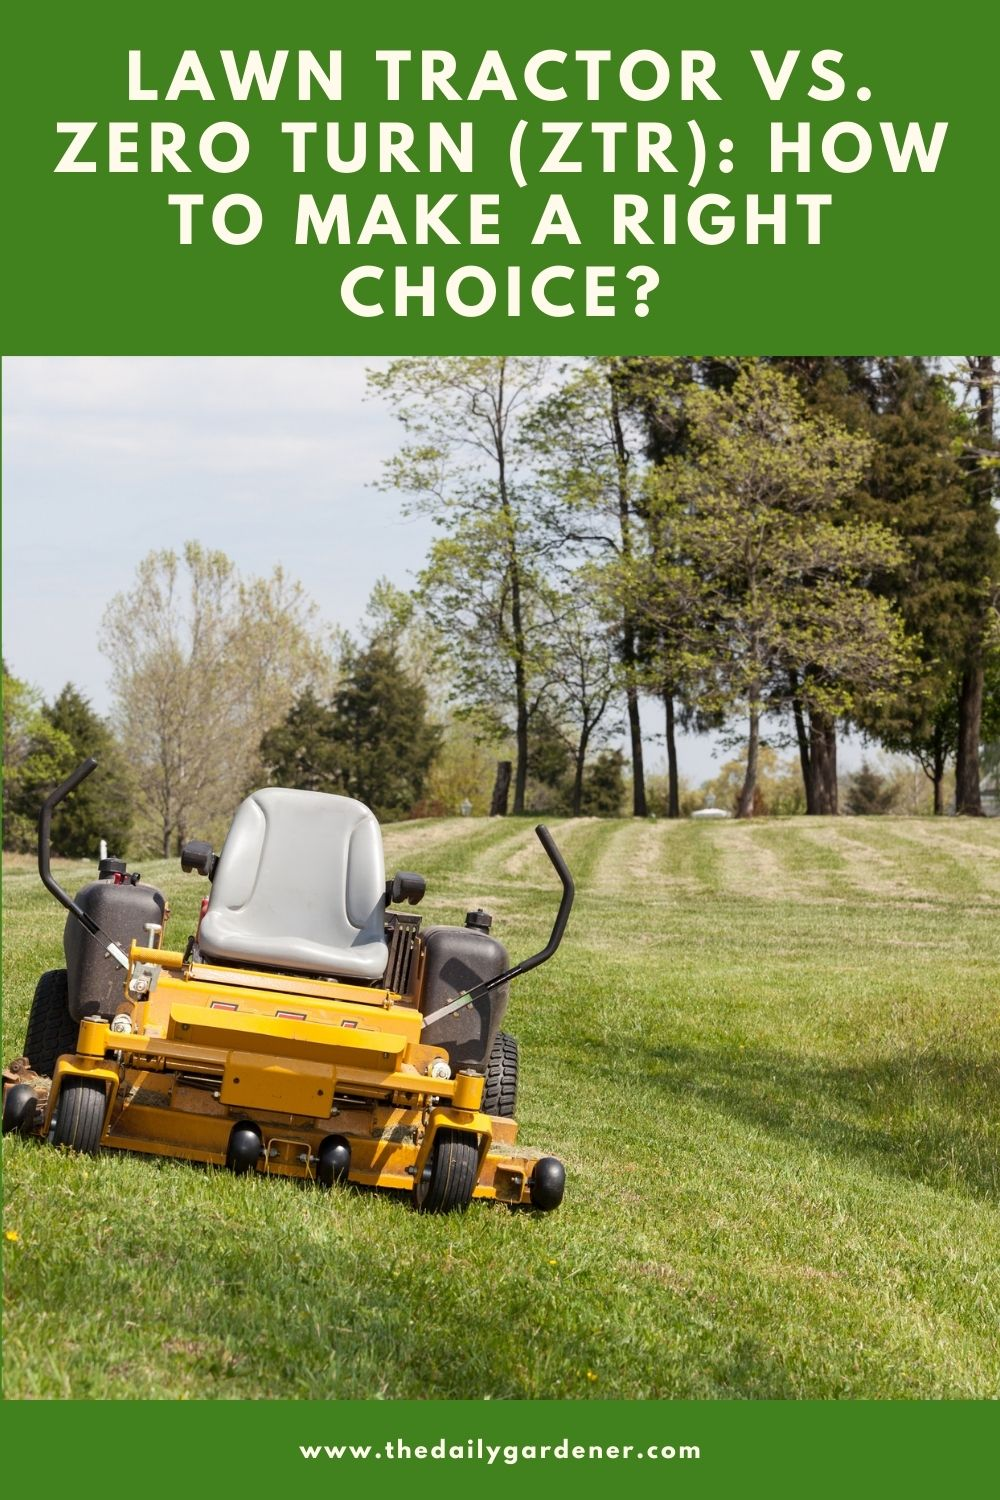 Lawn Tractor vs. Zero Turn (ZTR) How to Make a Right Choice 1